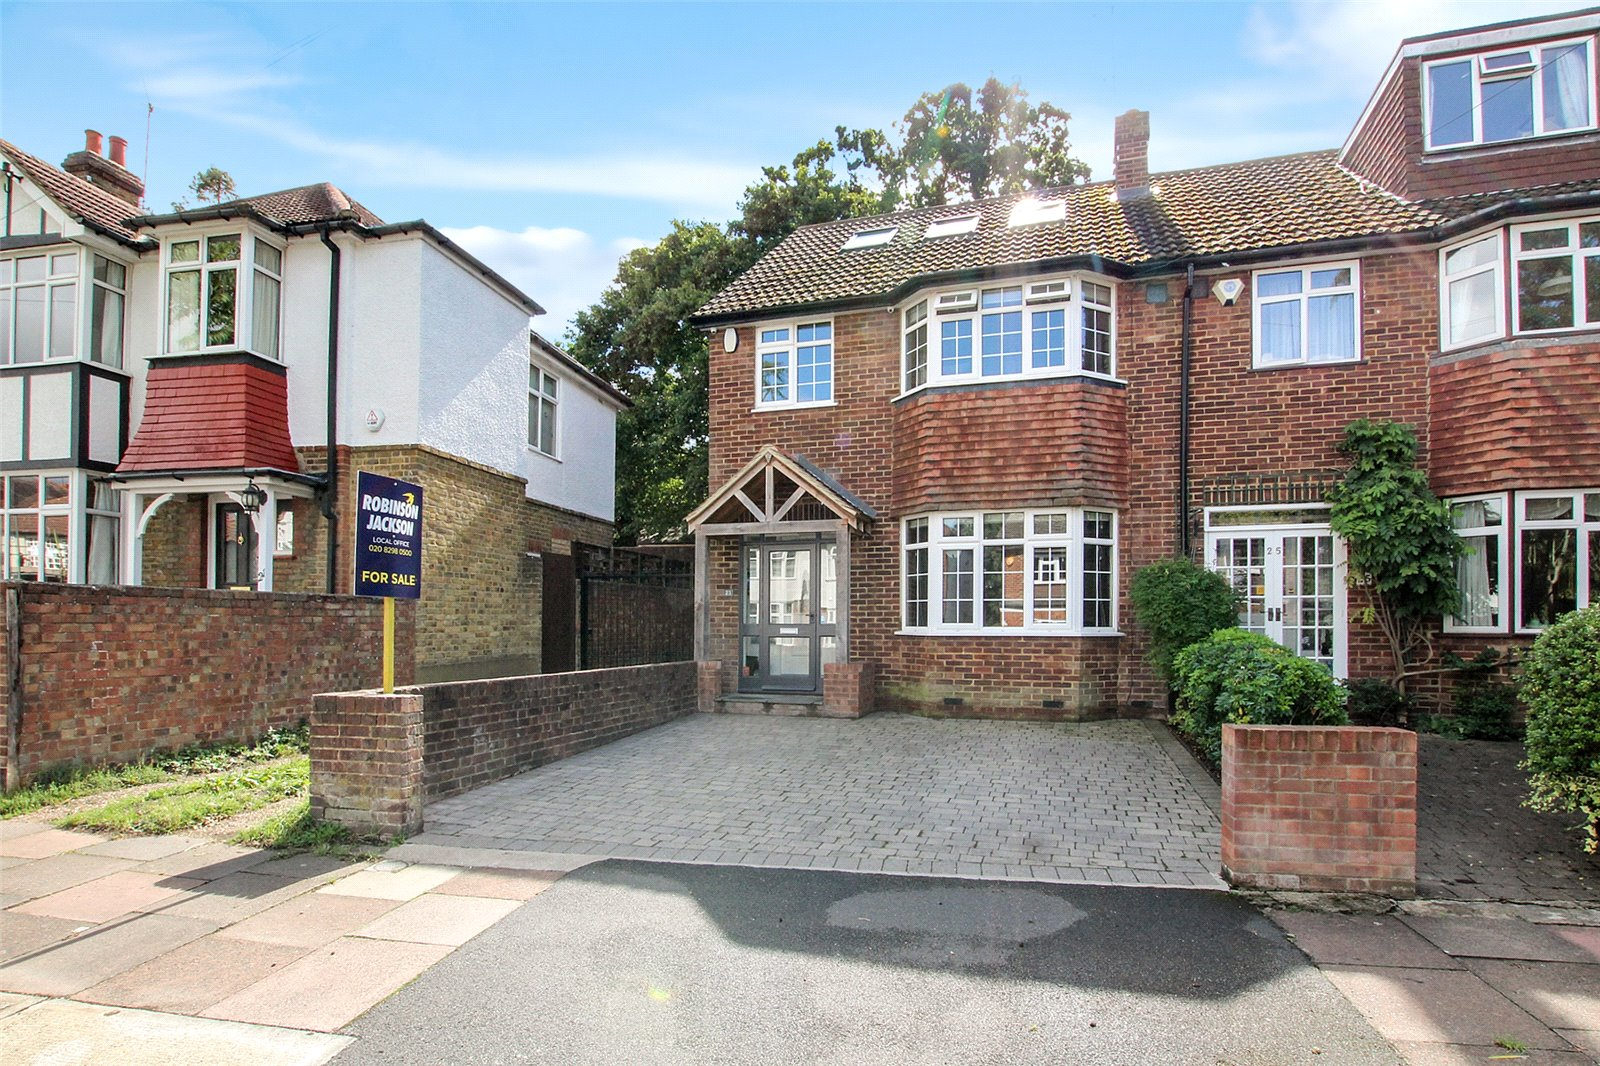 Orchard Road, Sidcup, Kent, DA14